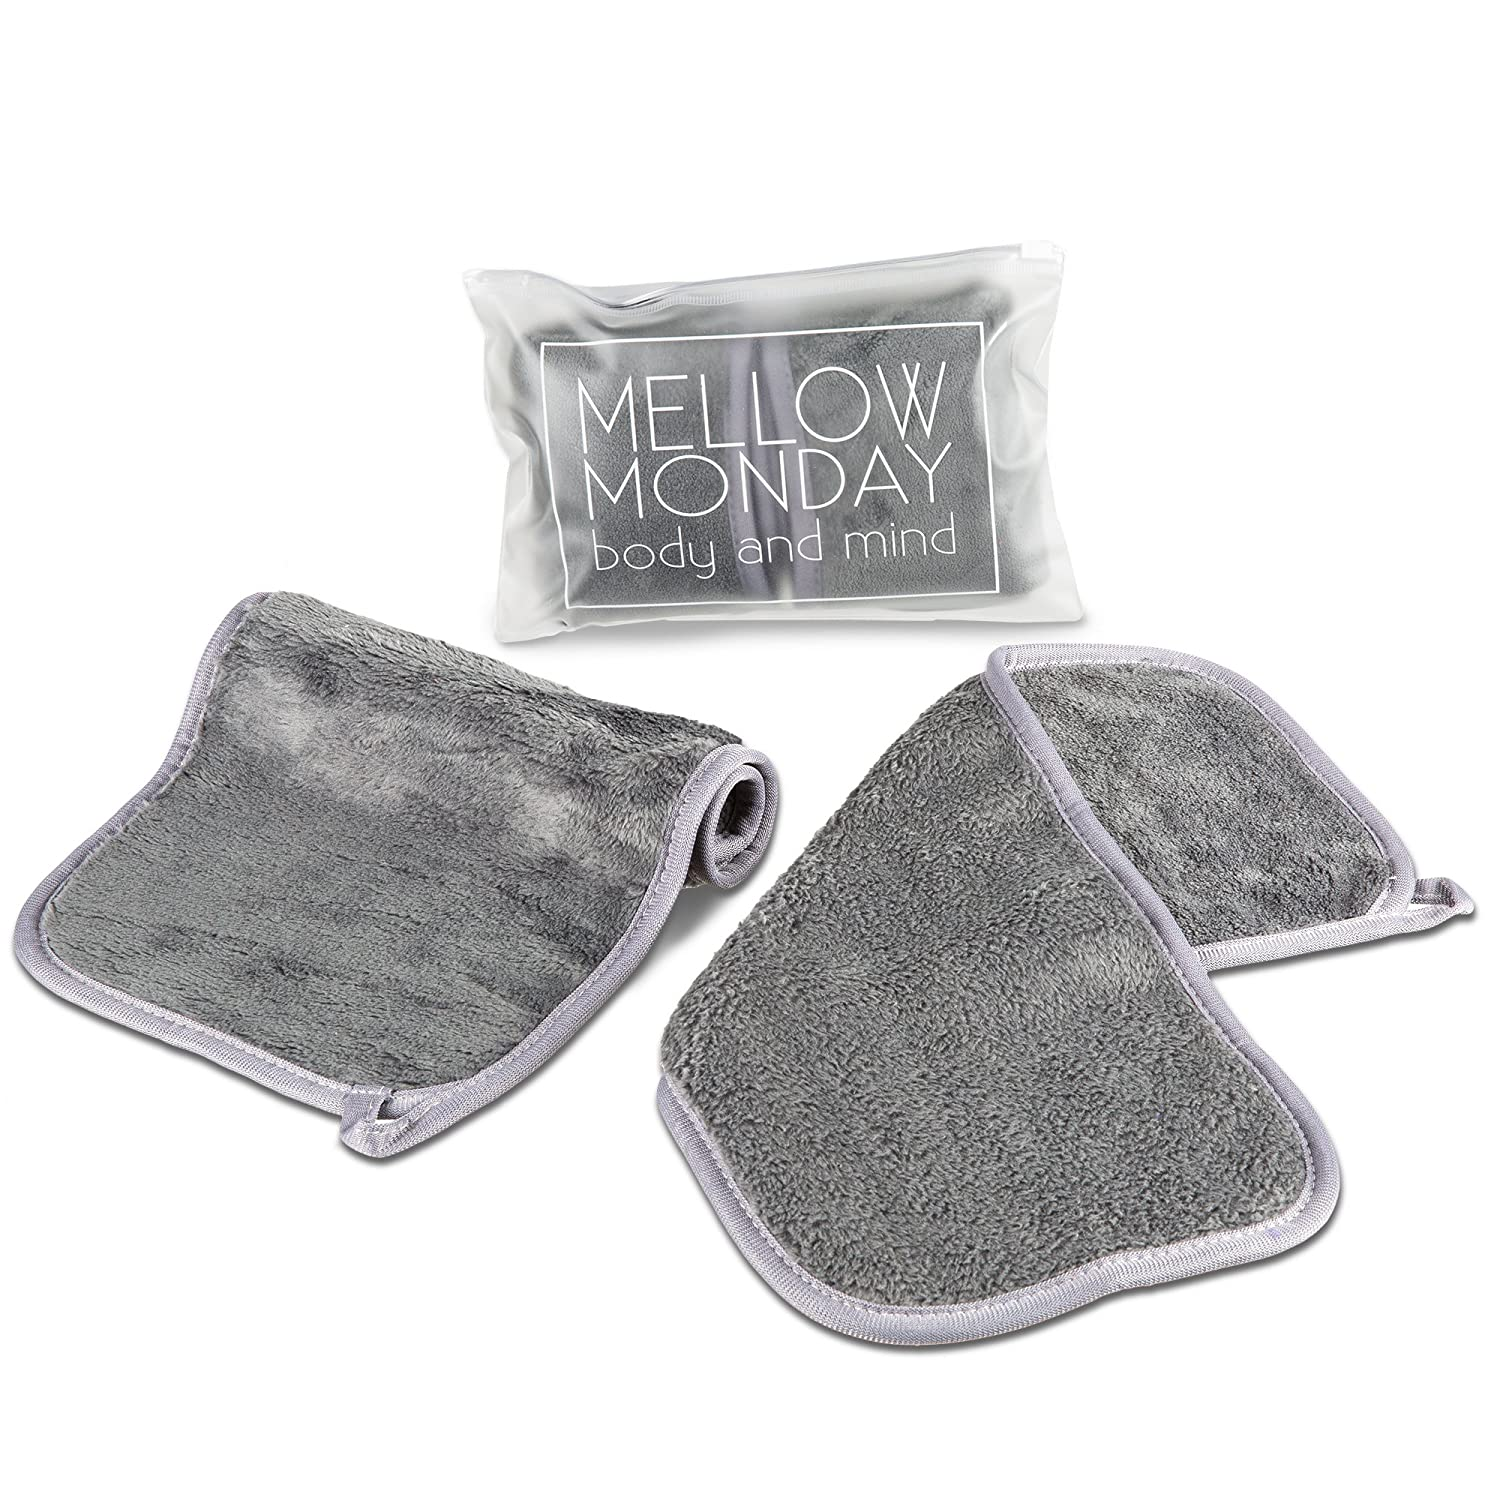 Makeup Remover Cloths | Remove Makeup with Water | Chemical Free | Suitable for All Skin Types | Set of 2 | by Mellow Monday